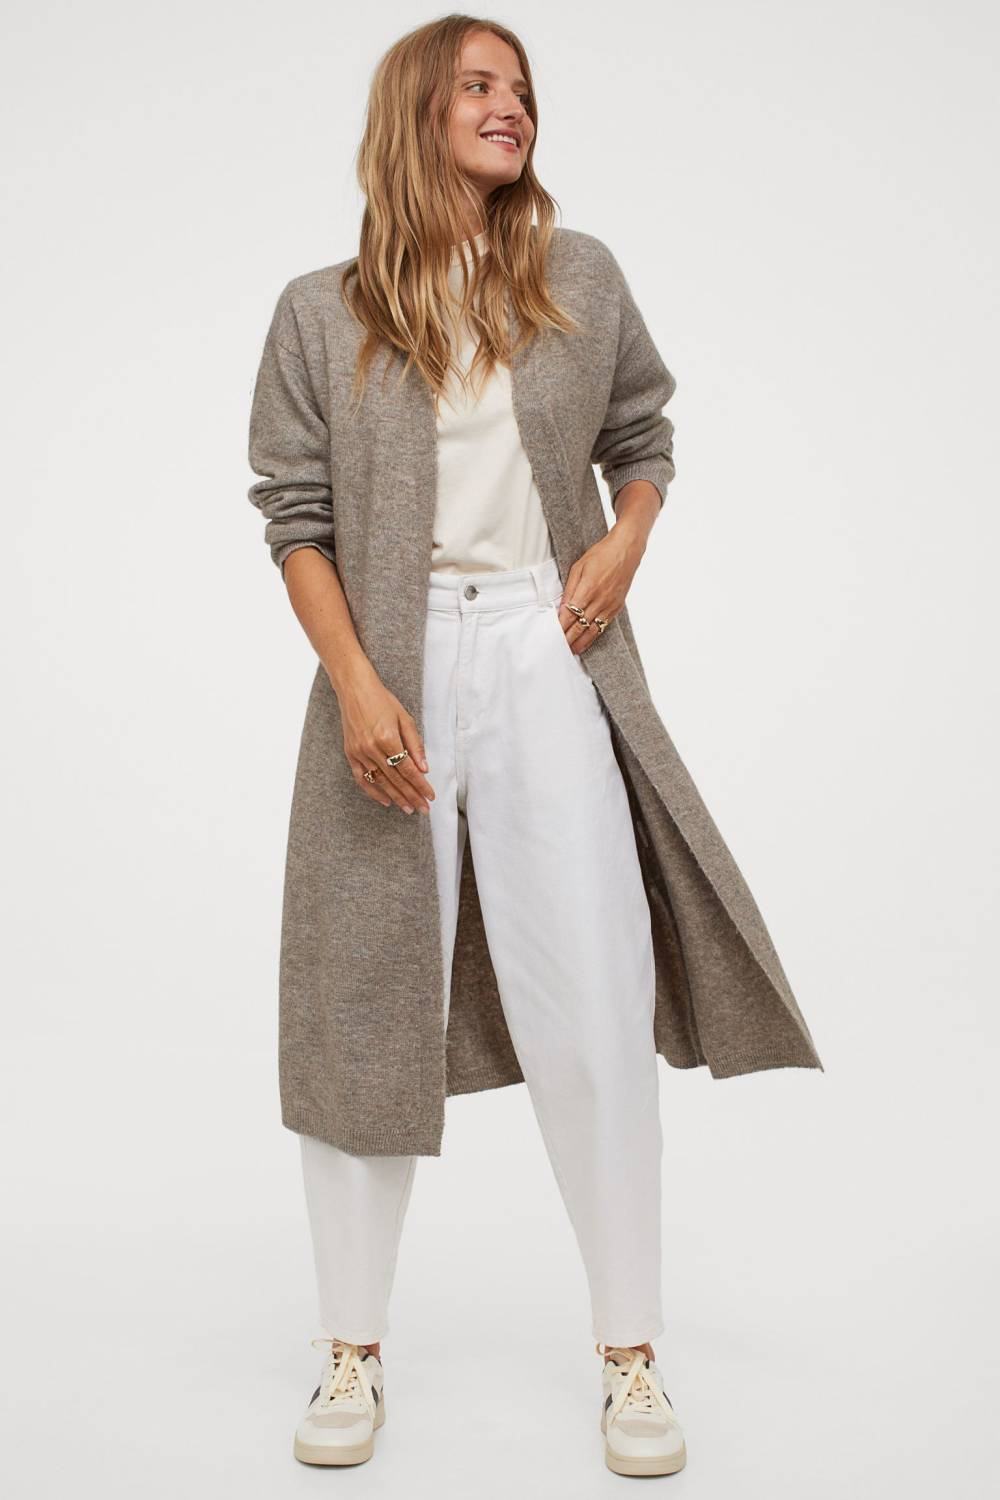 h&m recycled knit cardigan